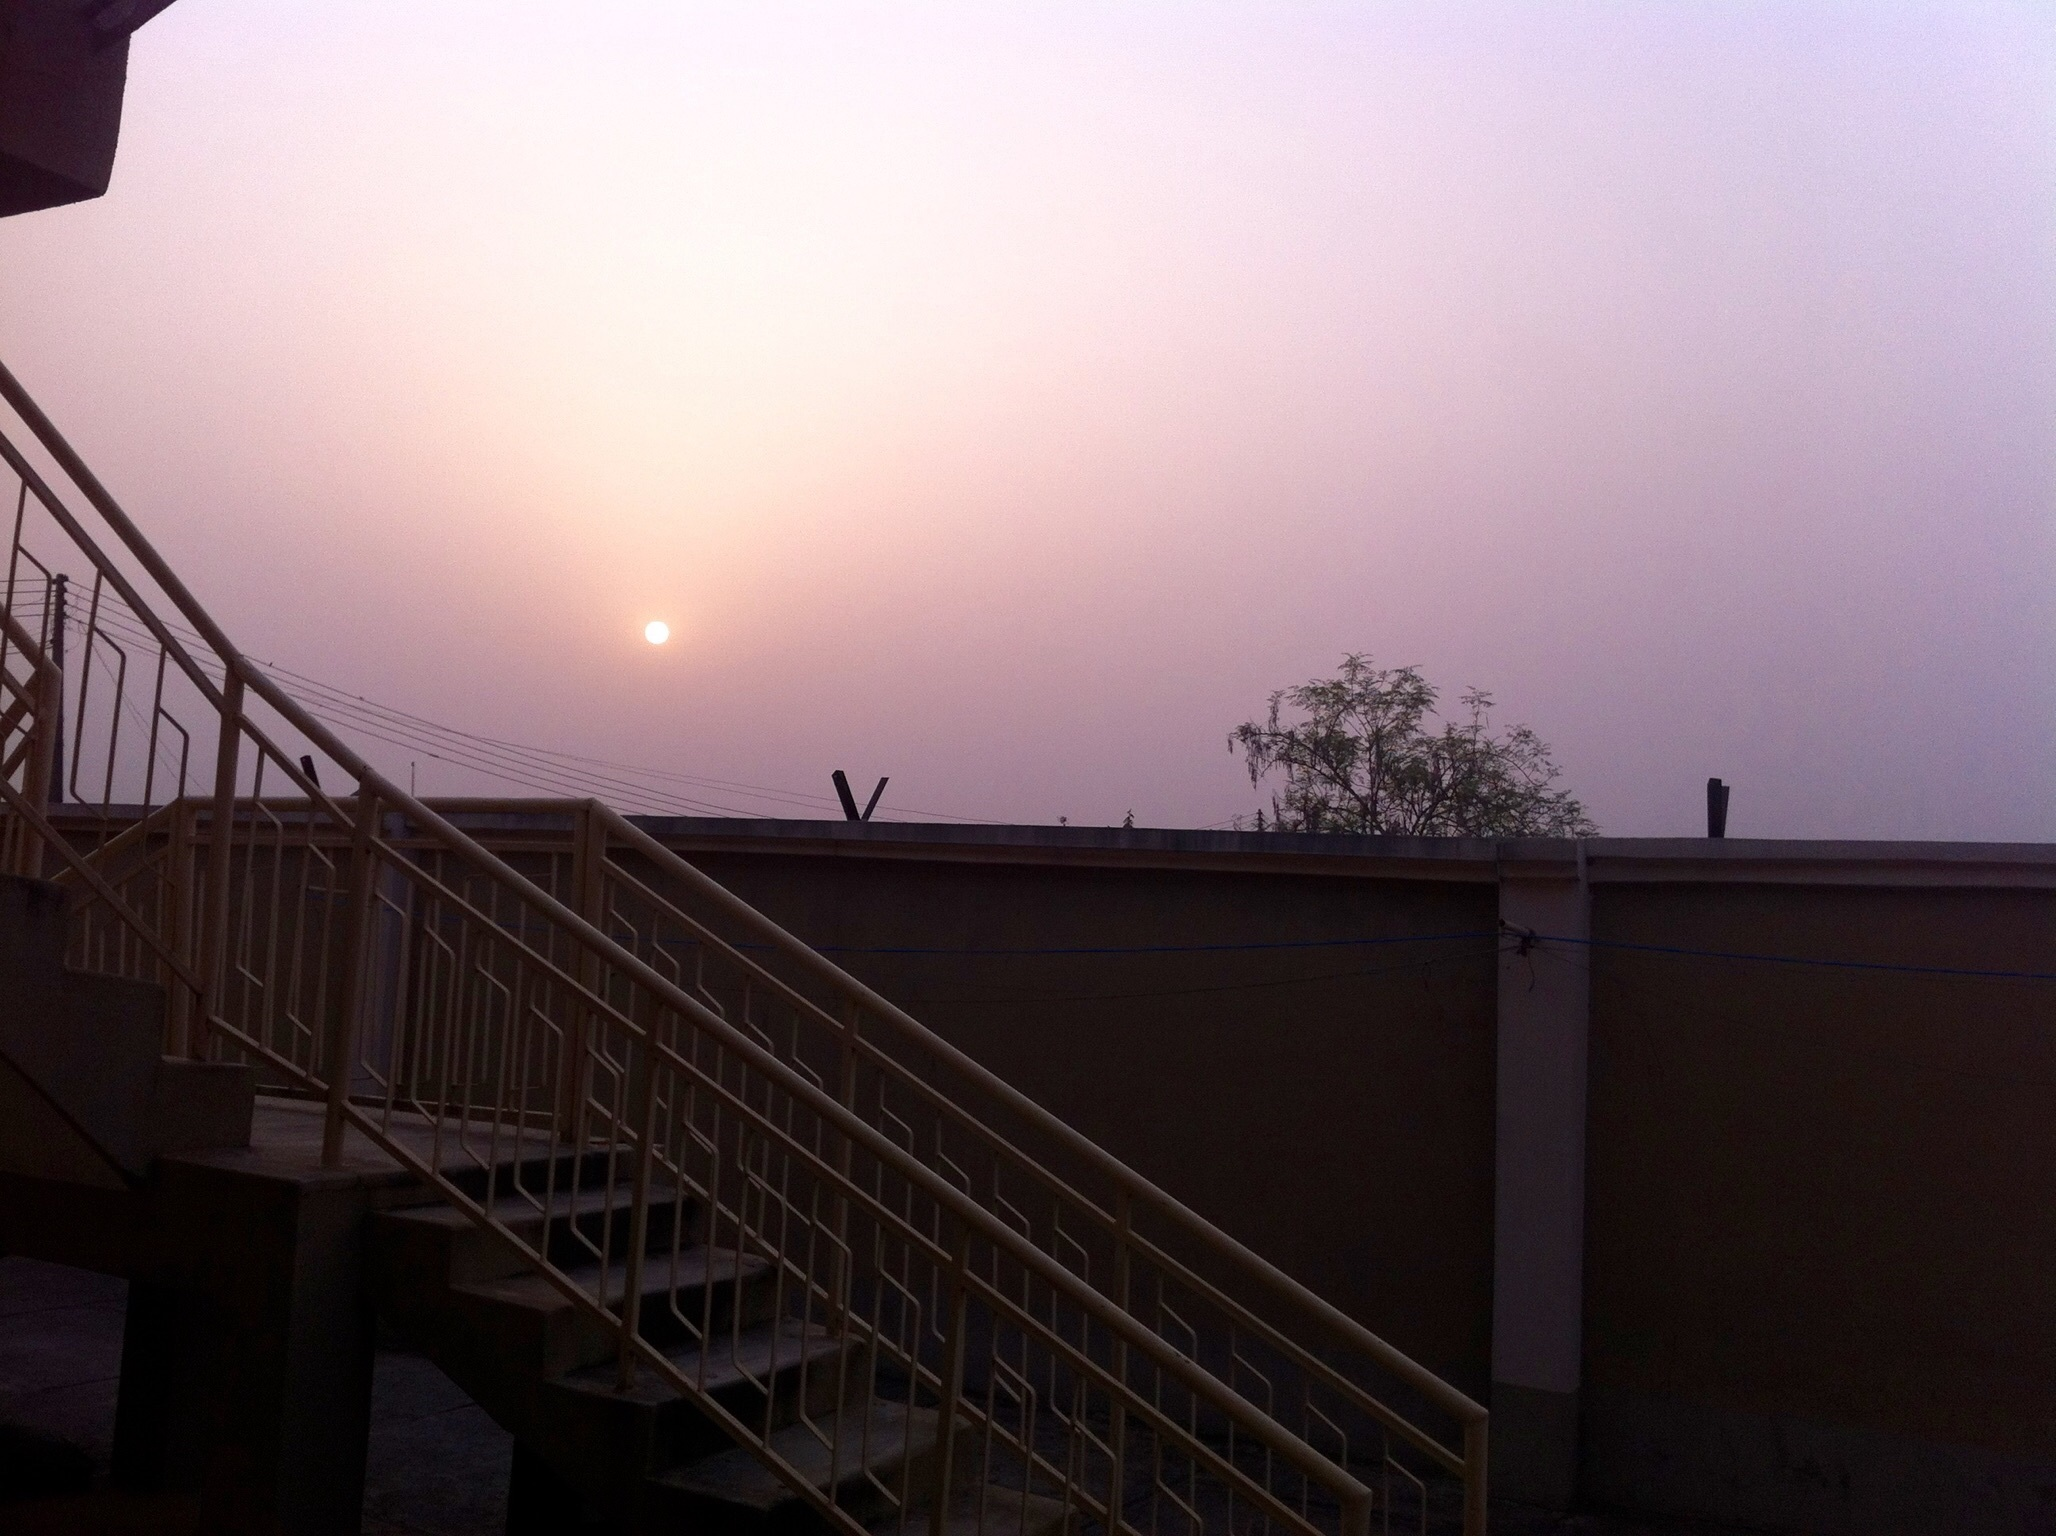 Sunset in Ilesa